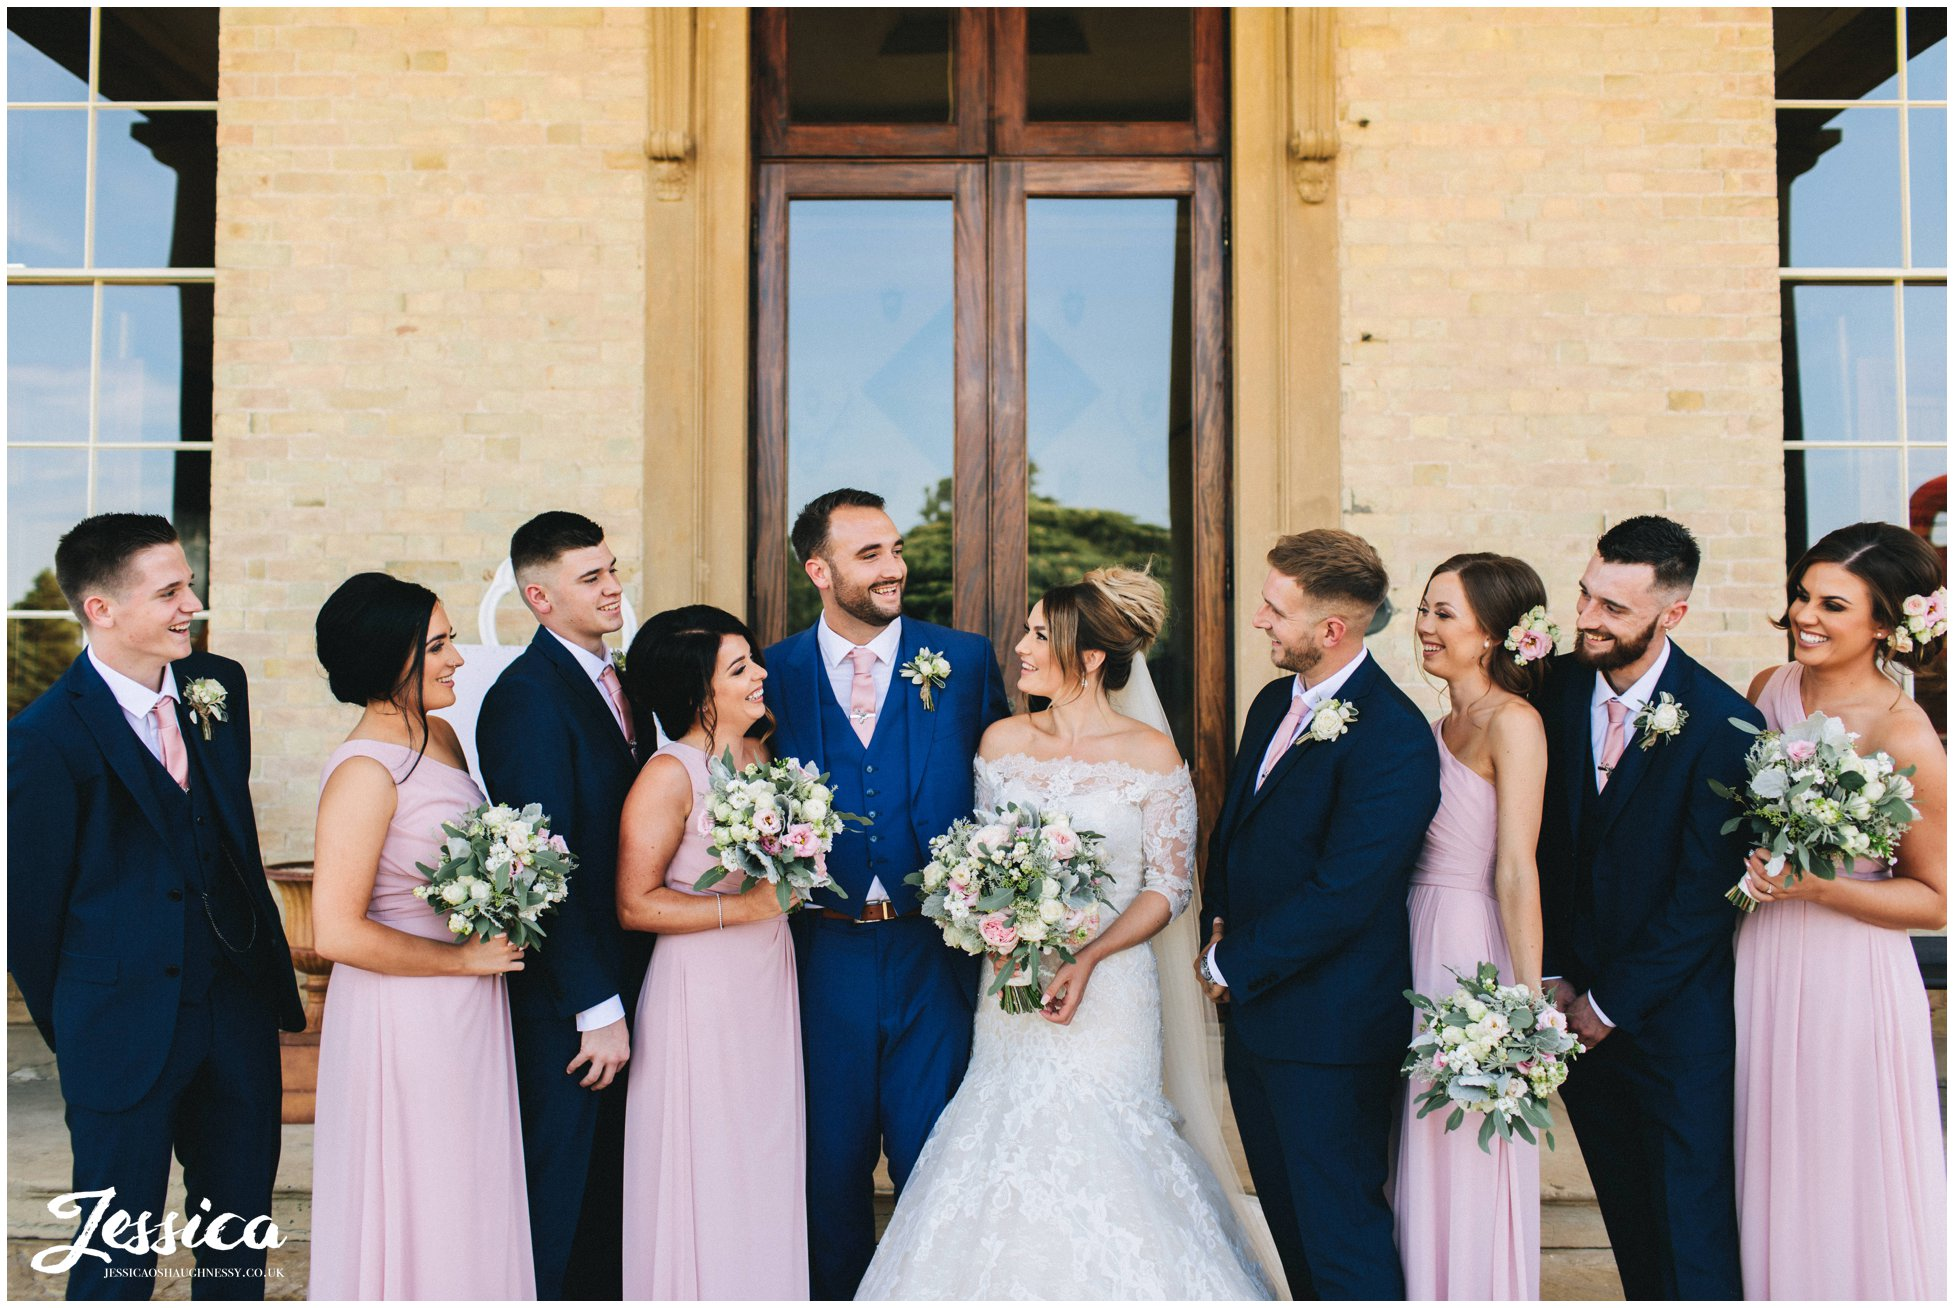 the whole wedding party laugh together